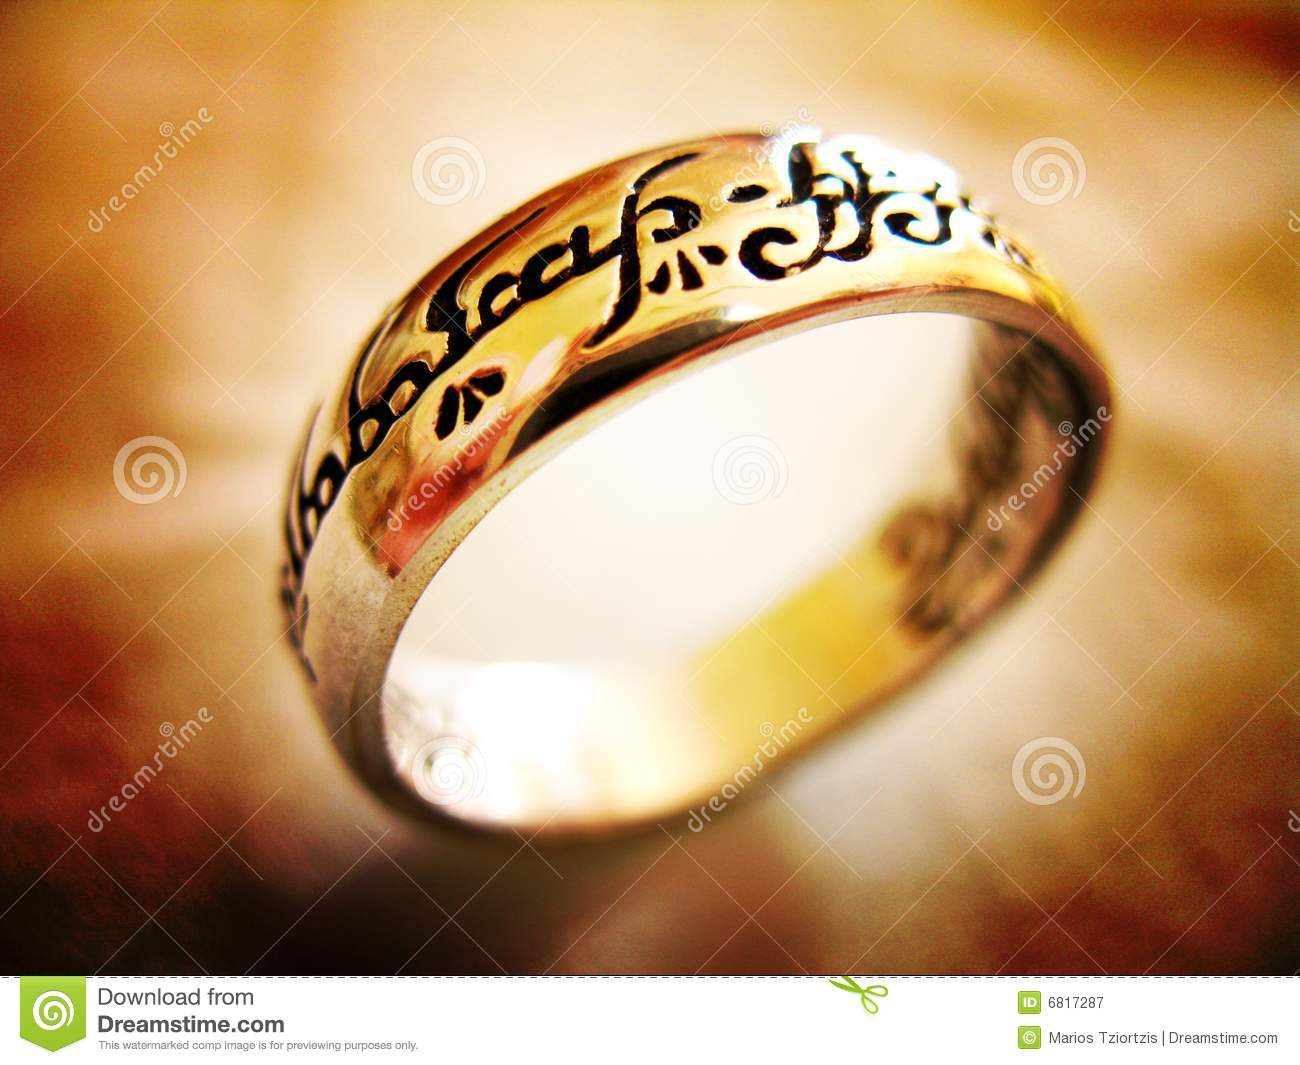 One ring to rule them all wedding band